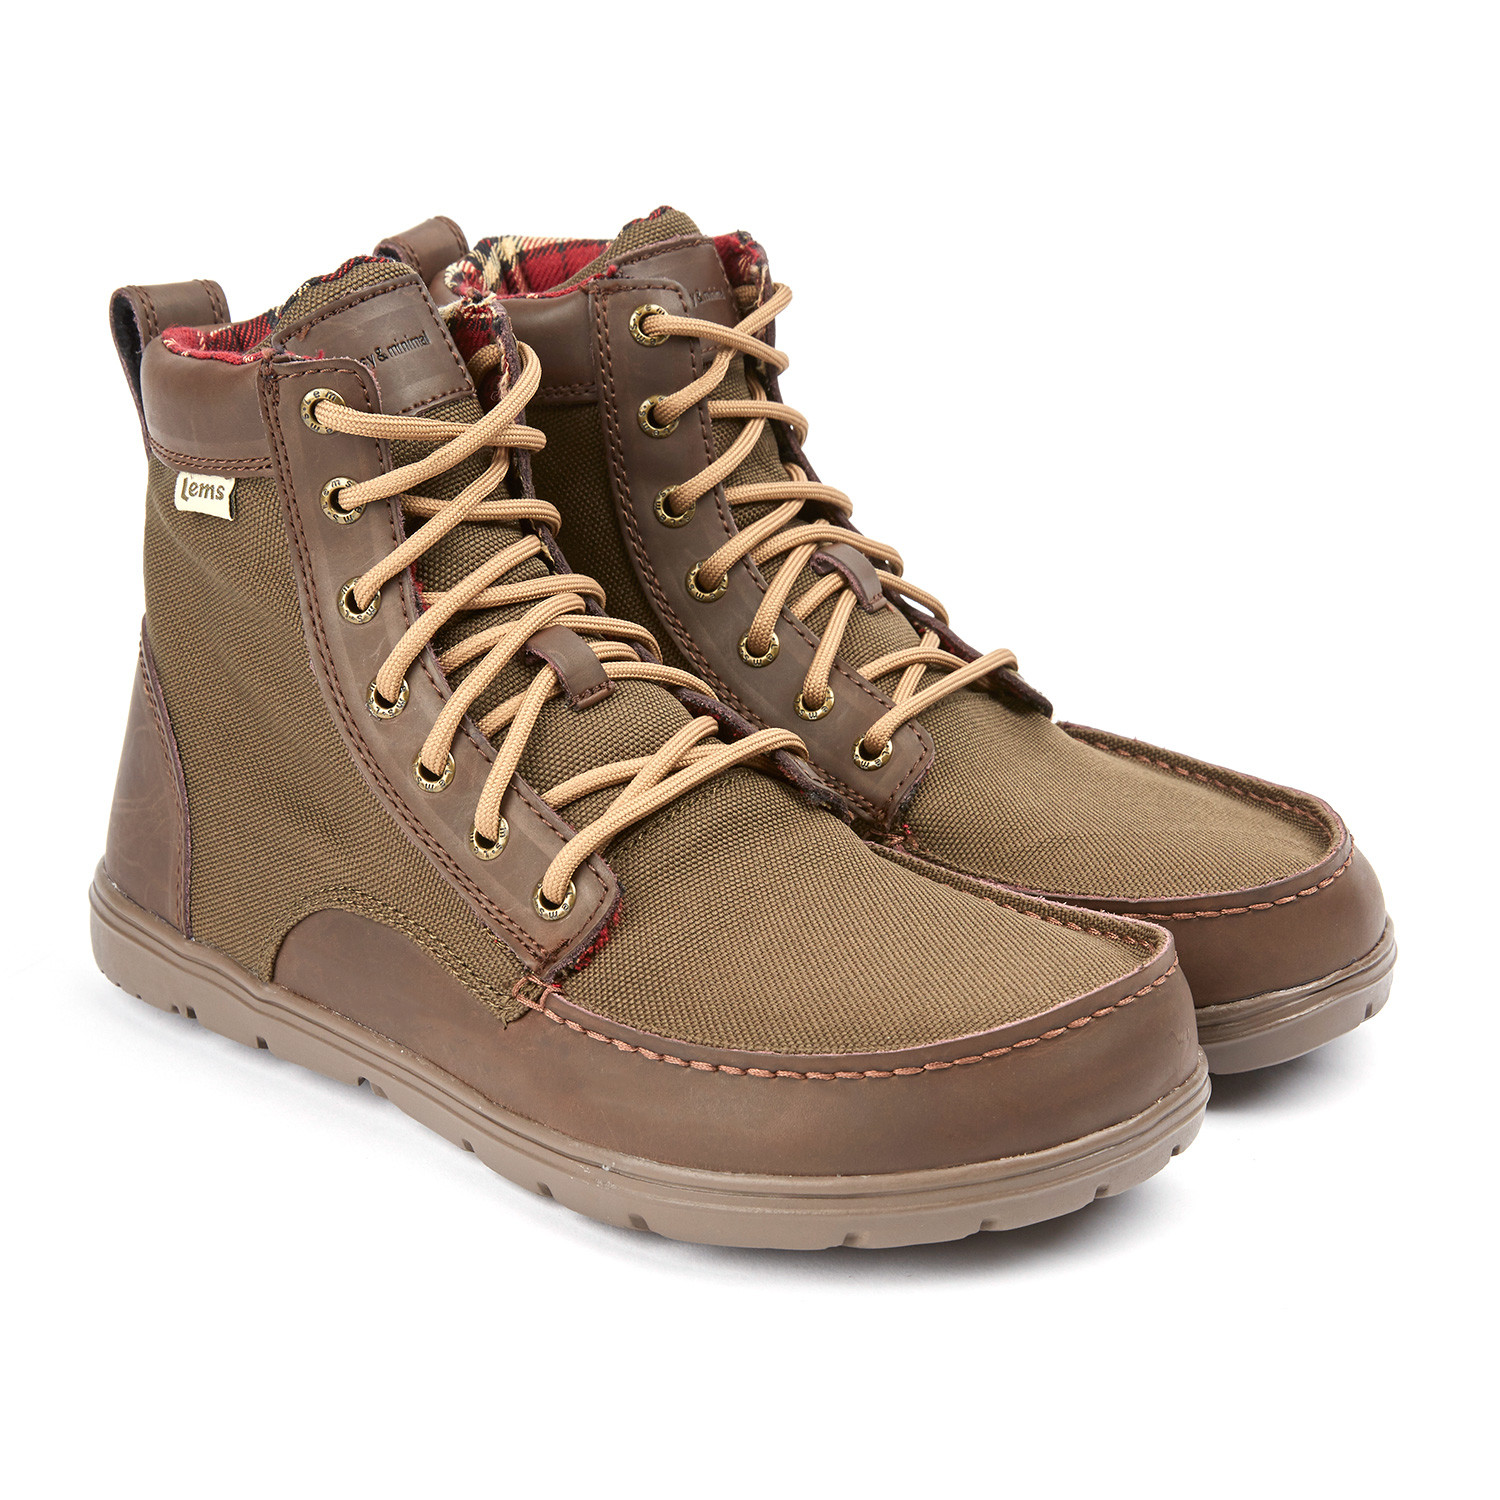 9101be44b46 Boulder Boot // Timber (Euro: 41) - Lems Shoes - Touch of Modern